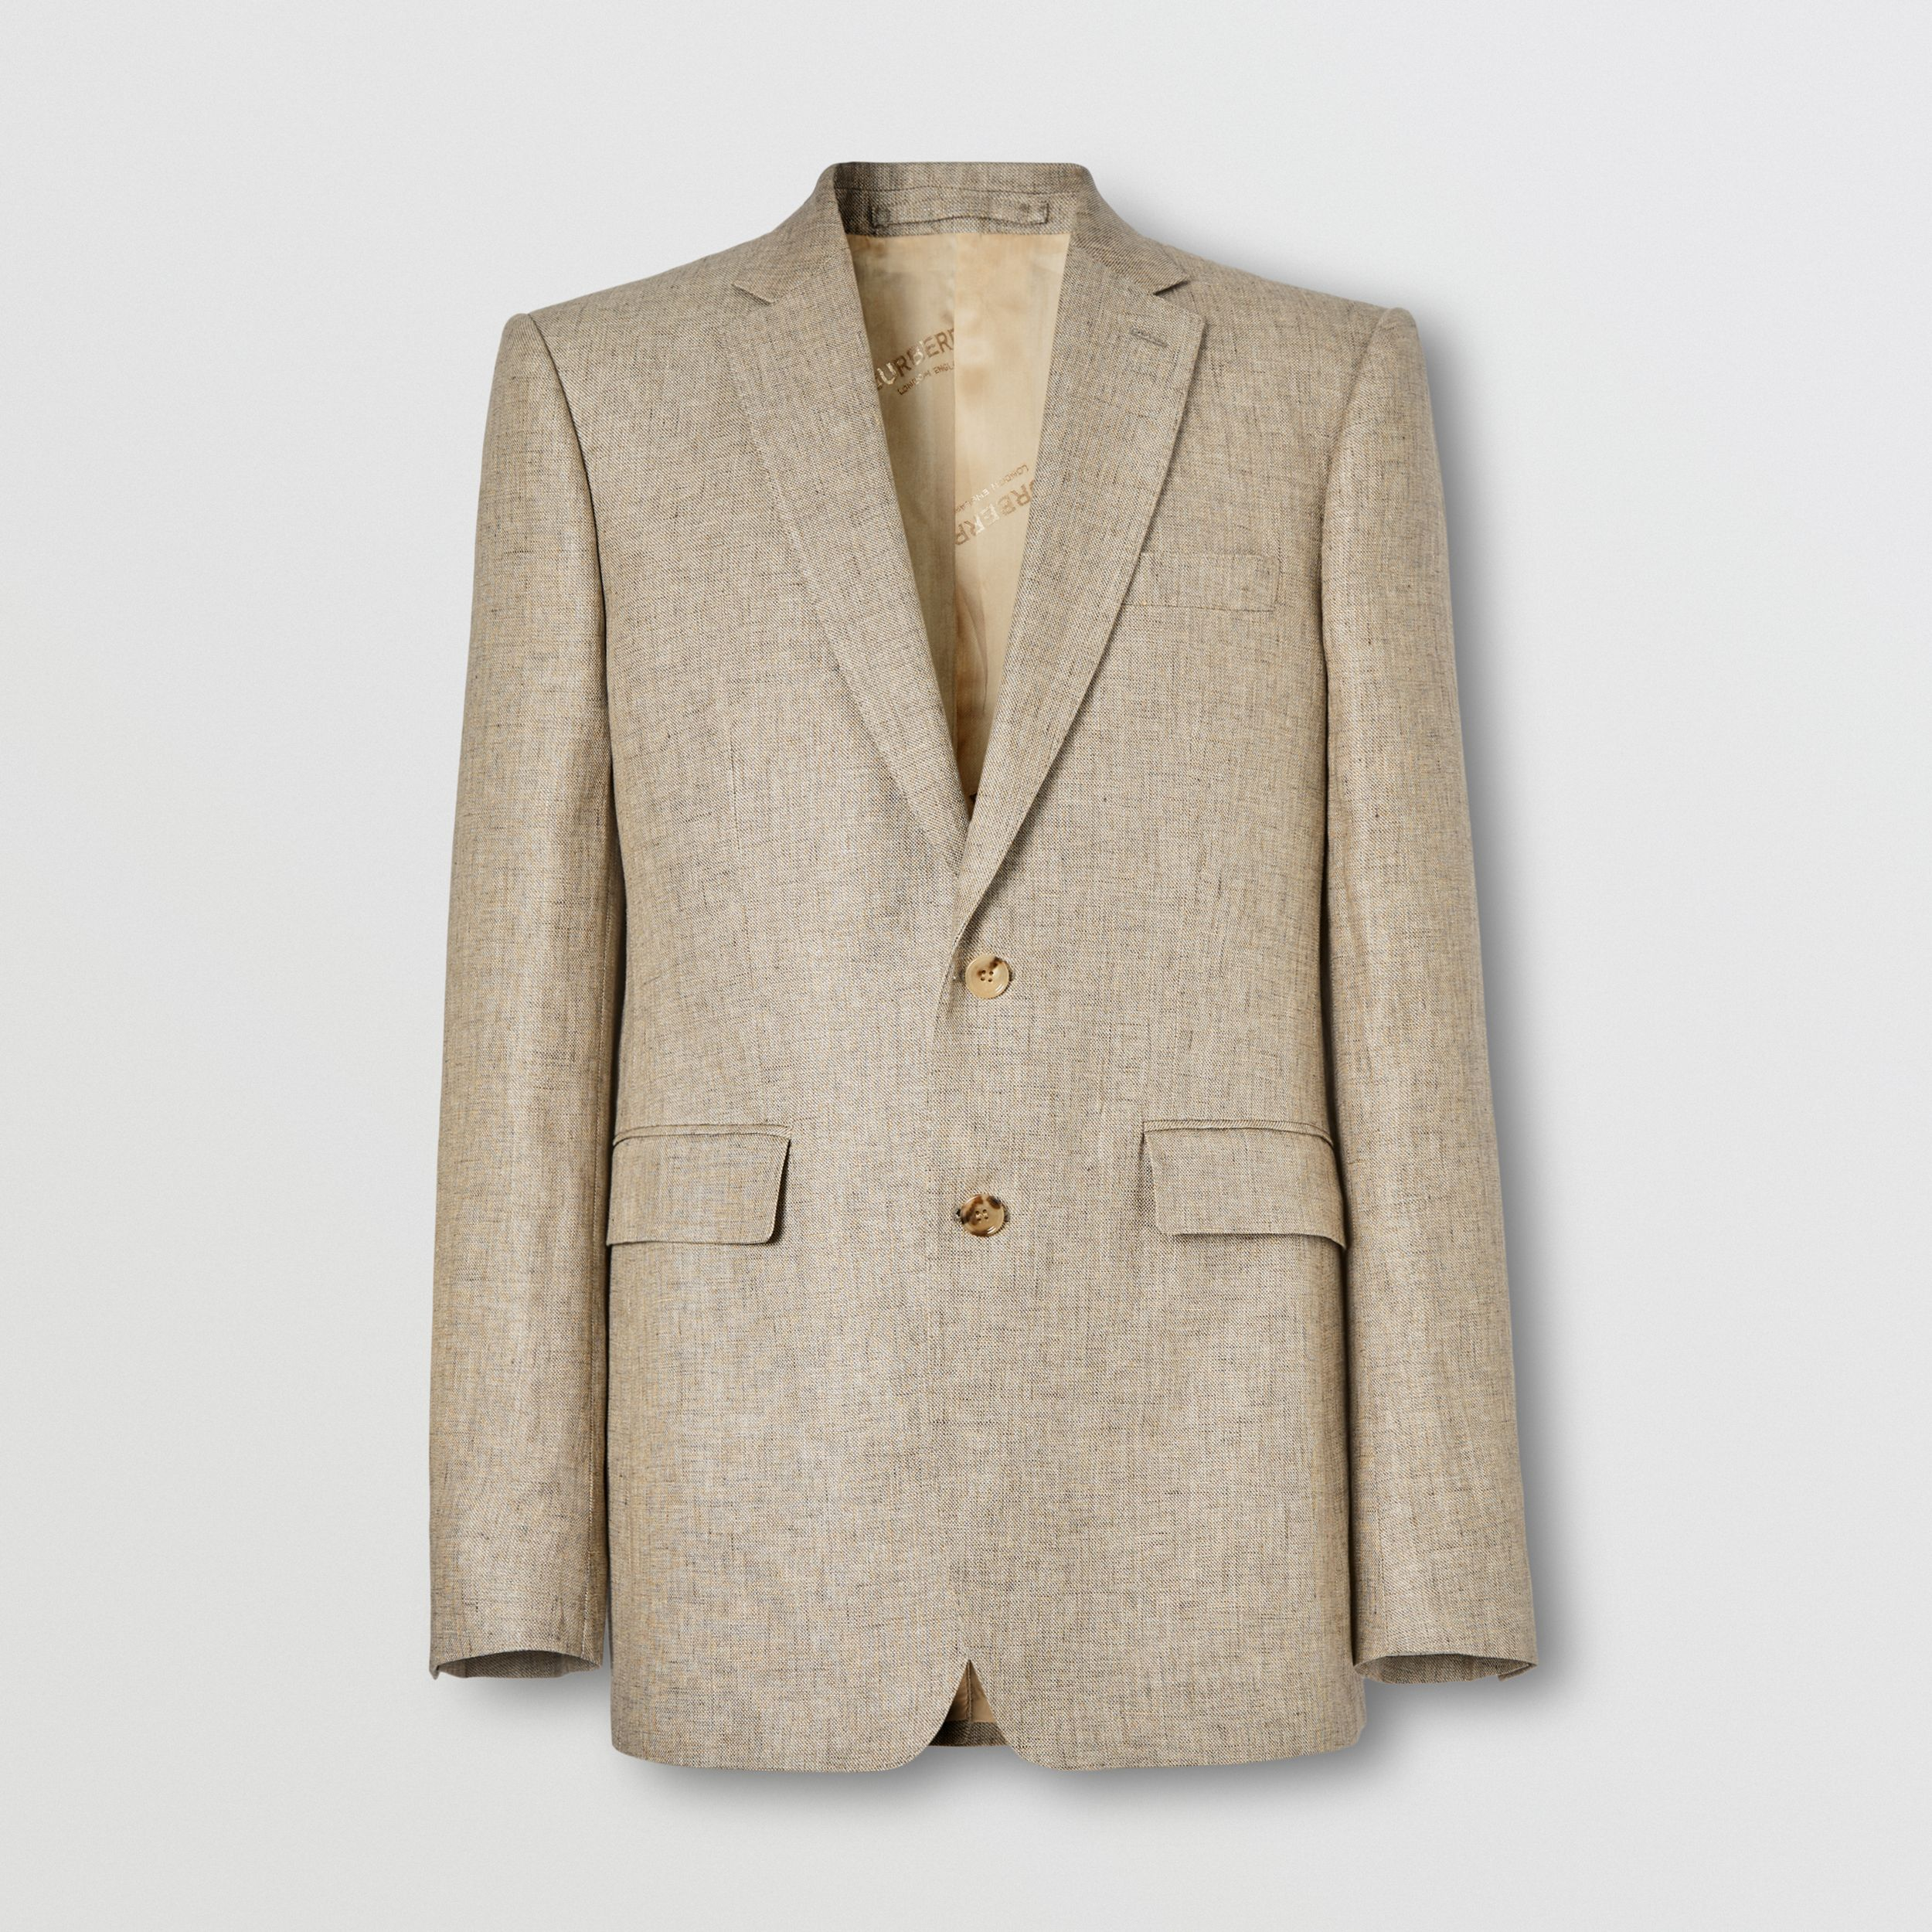 Classic Fit Linen Tailored Jacket in Cedar Brown Melange - Men | Burberry - 4